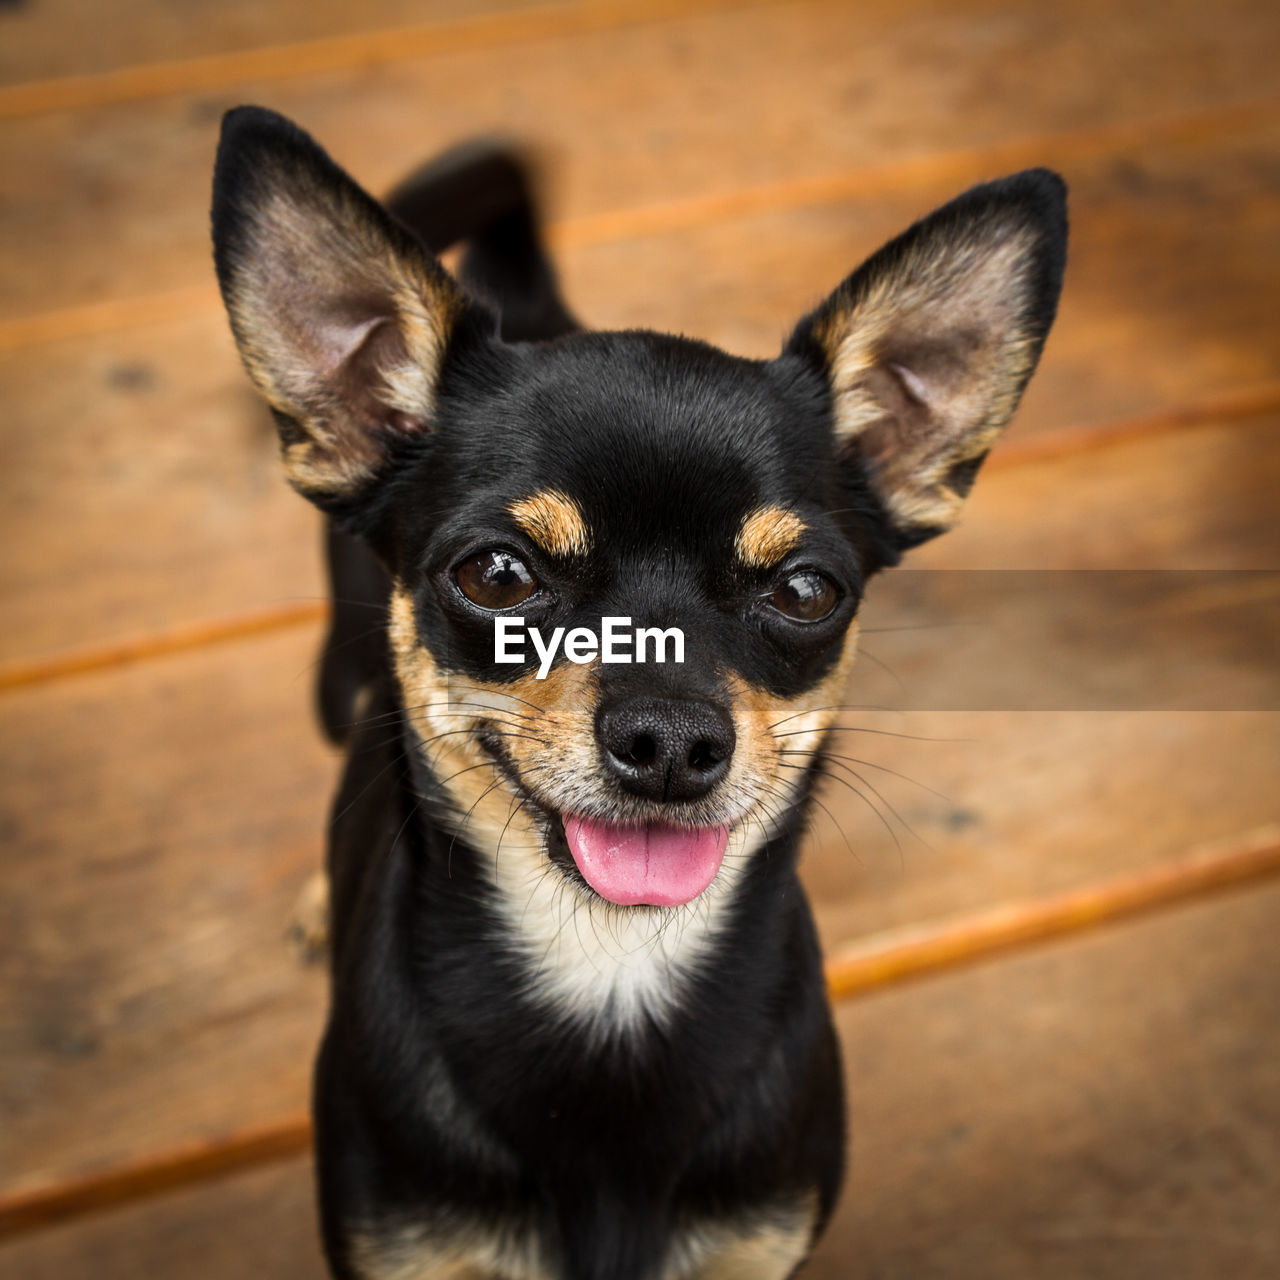 one animal, canine, dog, mammal, domestic, pets, domestic animals, animal themes, animal, vertebrate, portrait, looking at camera, no people, focus on foreground, close-up, animal body part, indoors, sticking out tongue, high angle view, black color, animal head, animal tongue, animal eye